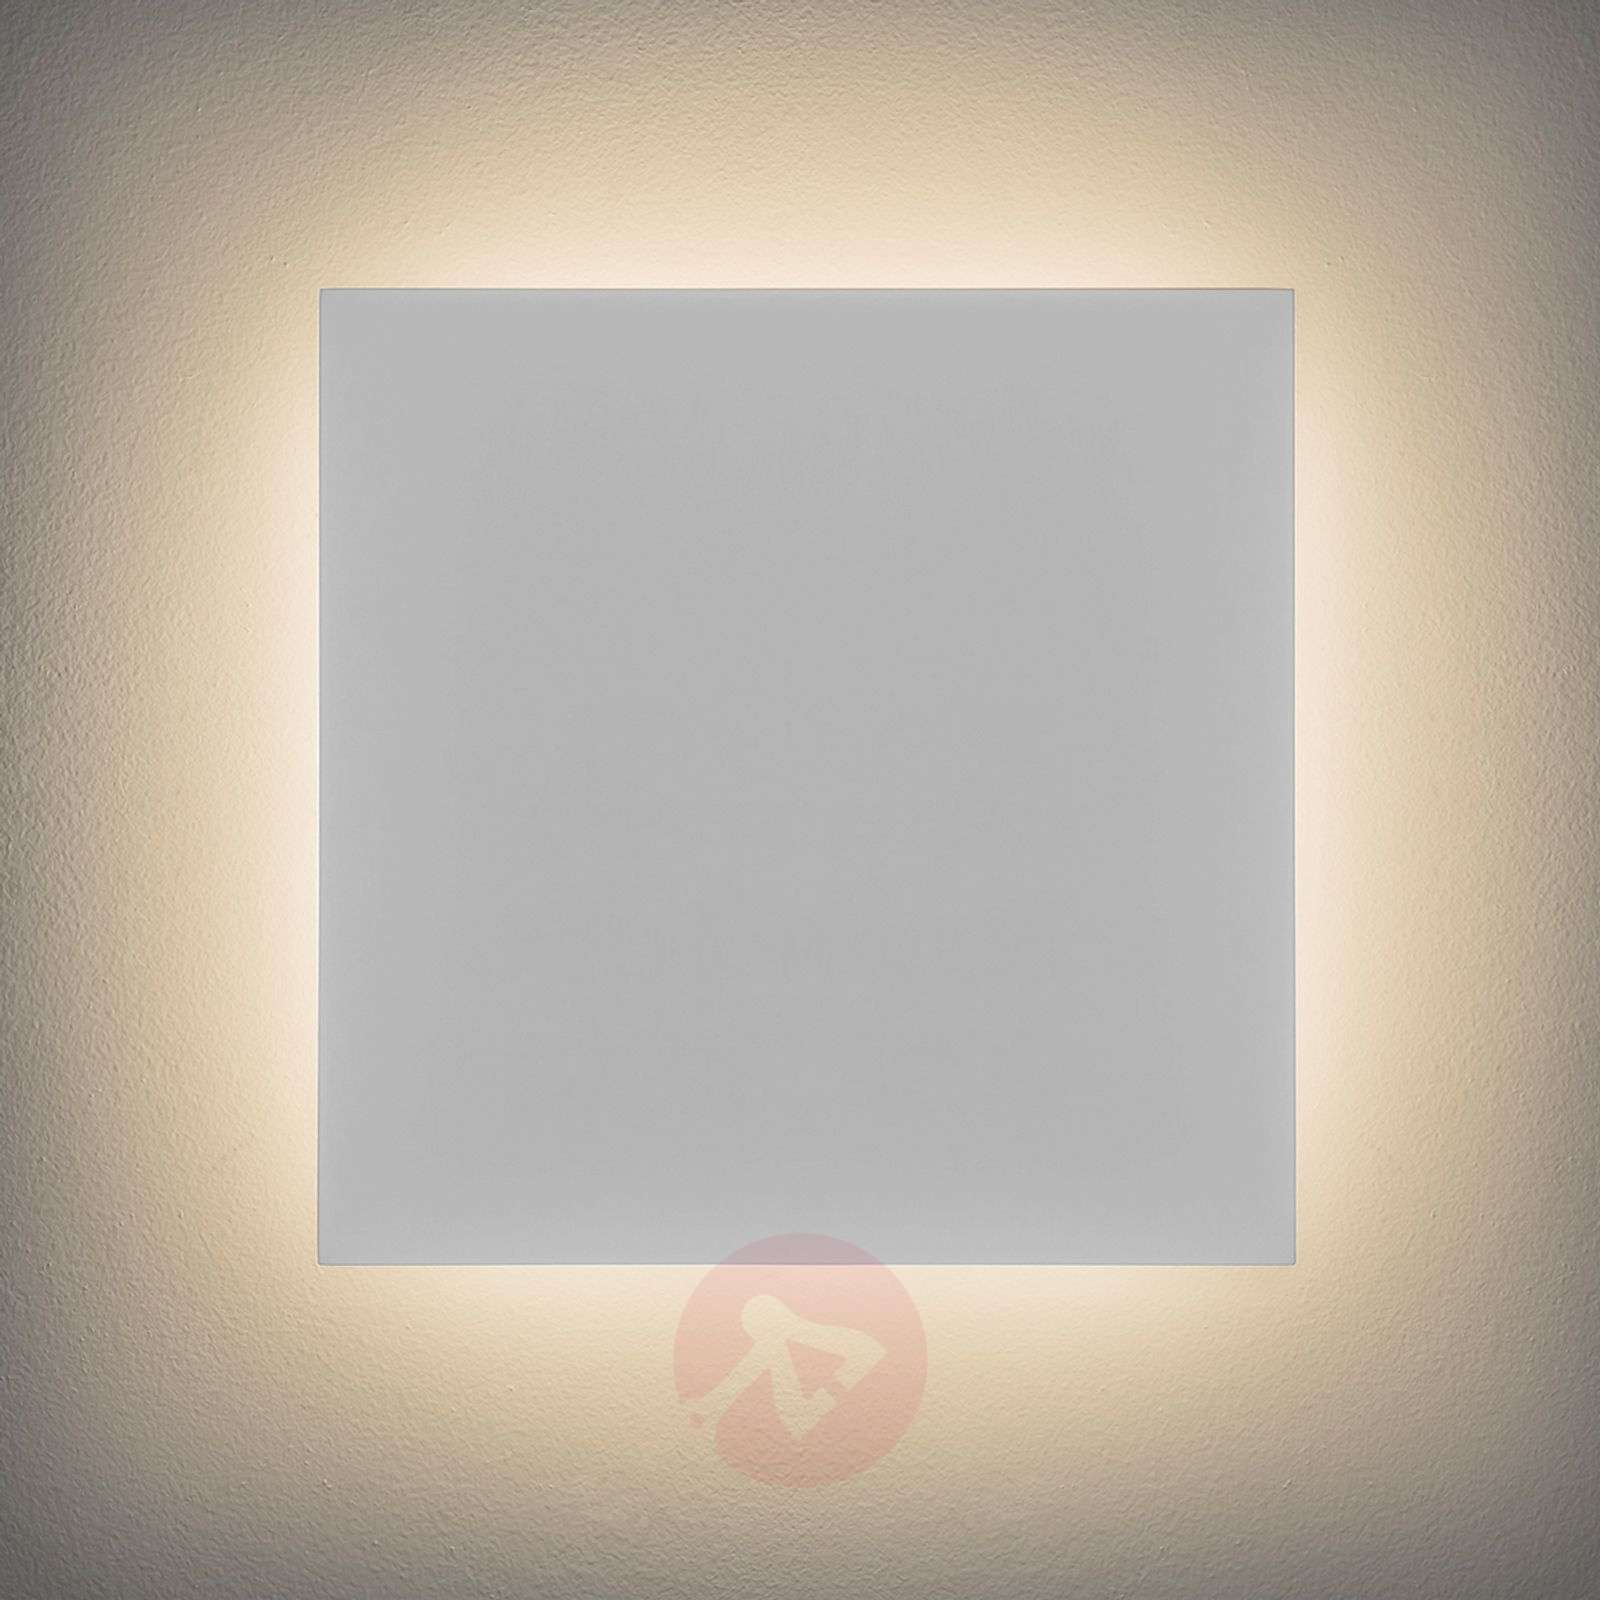 Applique LED Eclipse Square 300-1020499-03